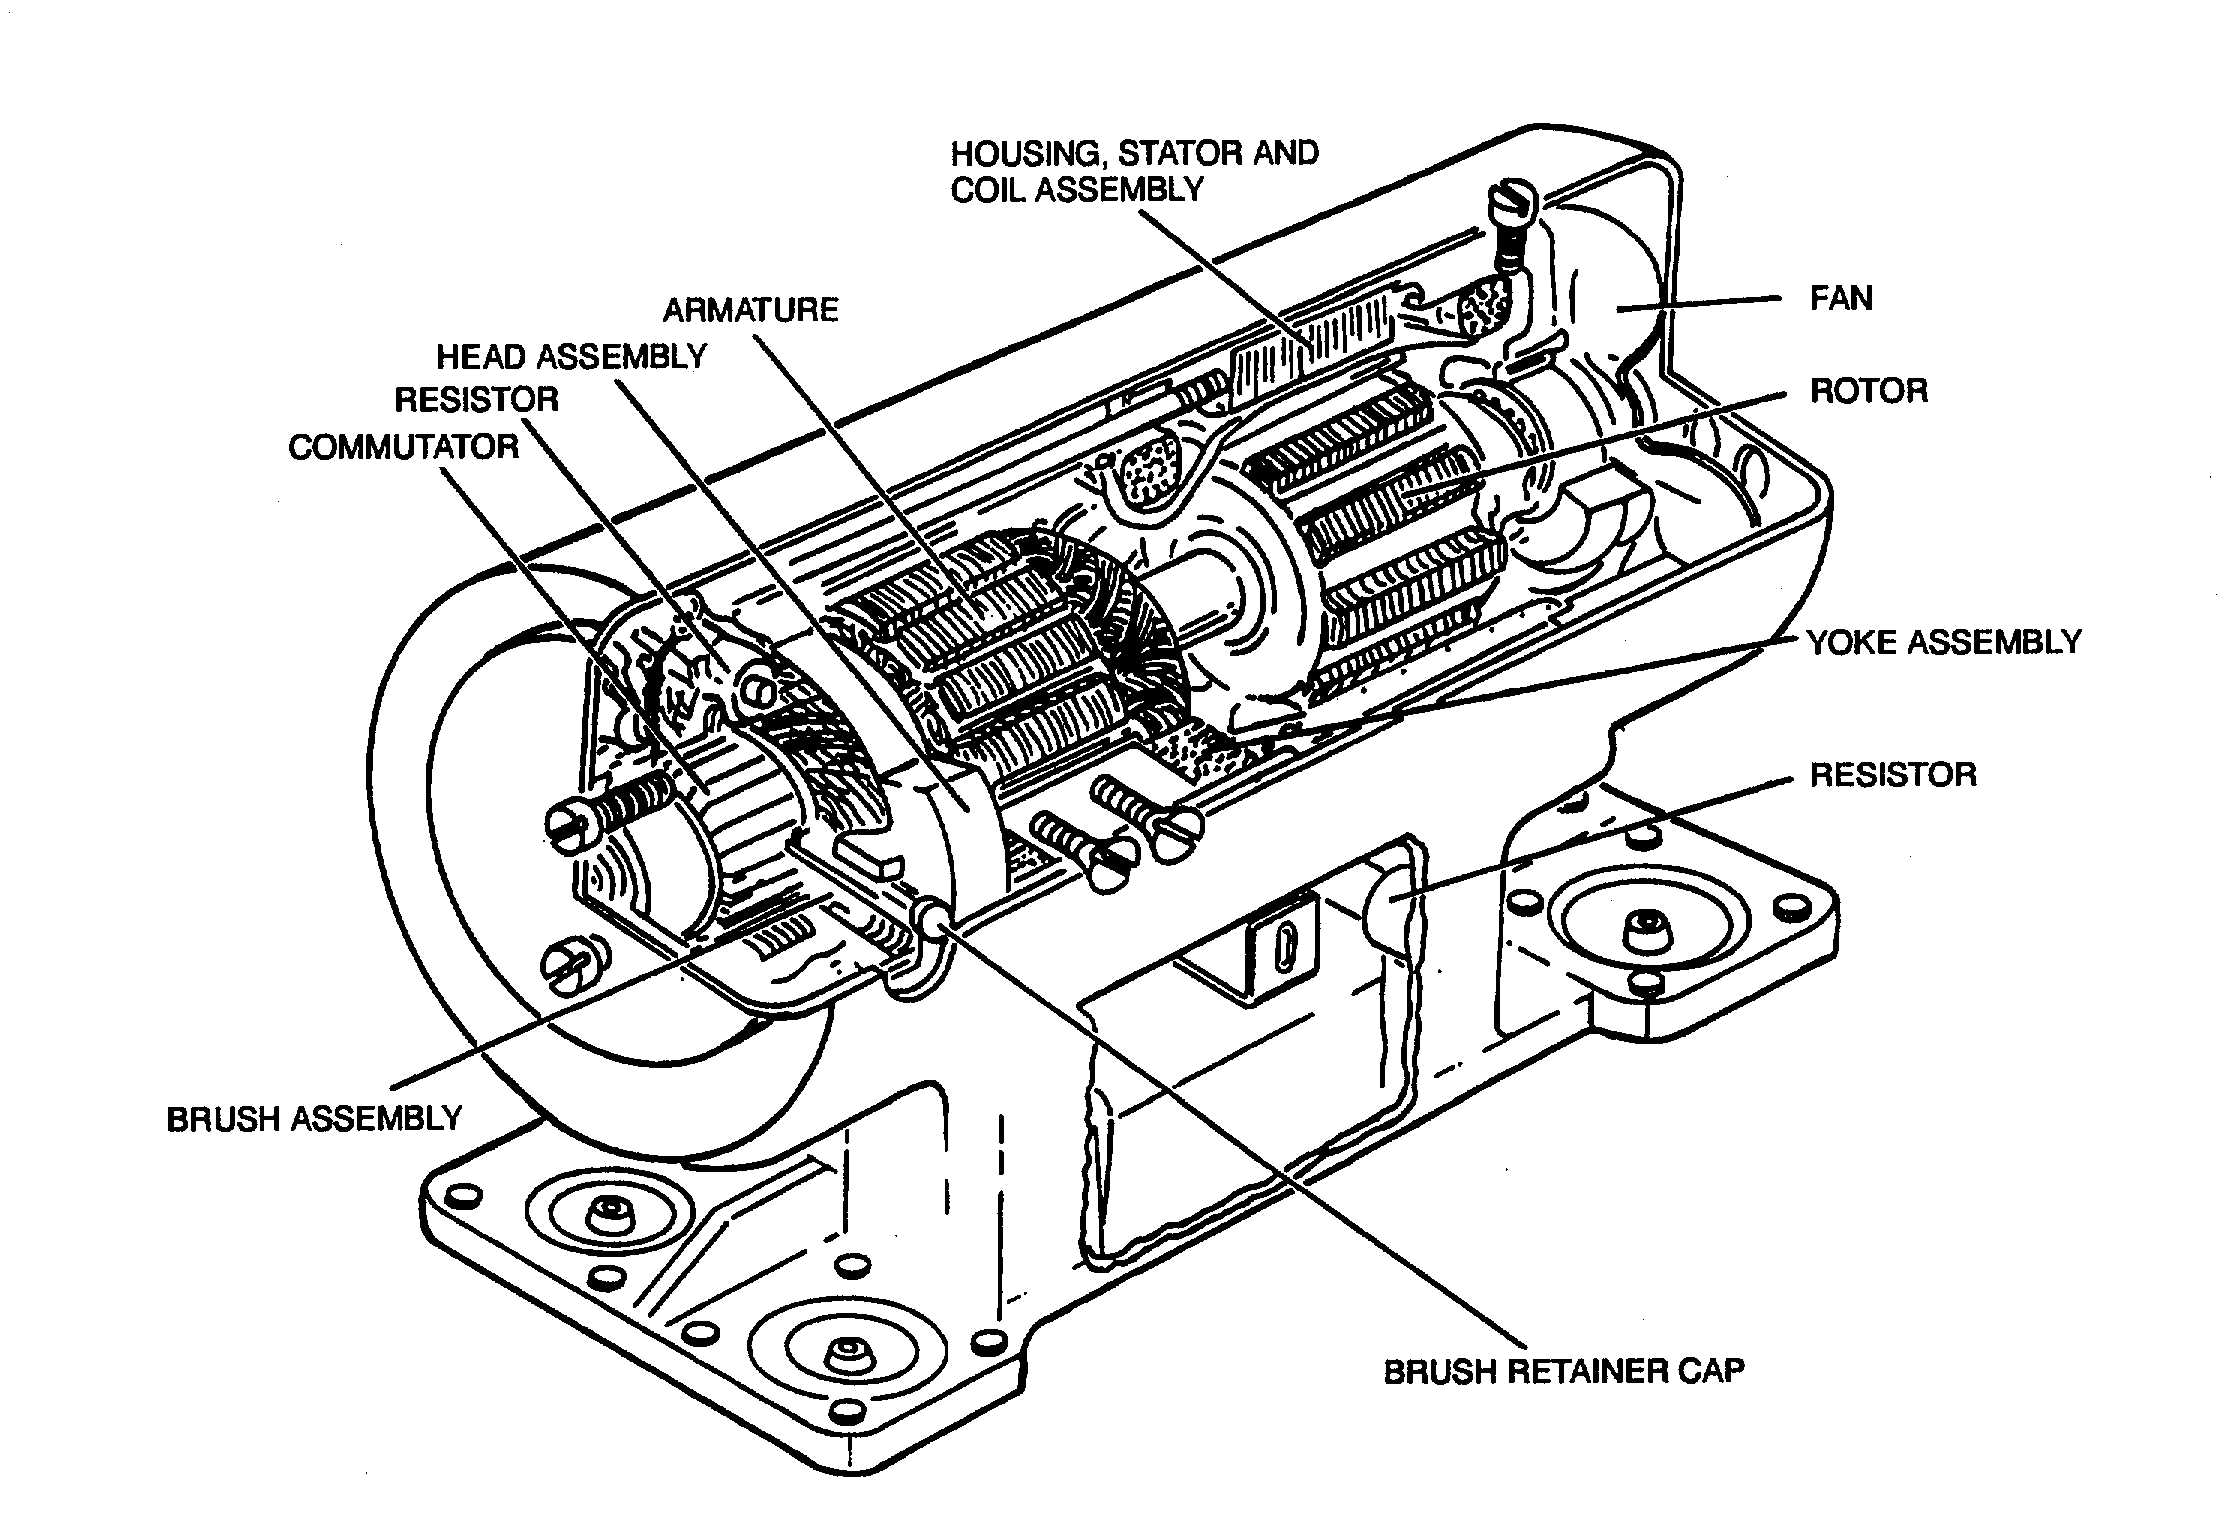 Figure 3 9 Inverter Engine Diagram Tm 1 1500 204 23 4 Replacement Criteria Are As Follows Replace Rotary Inverters When Any Unusual